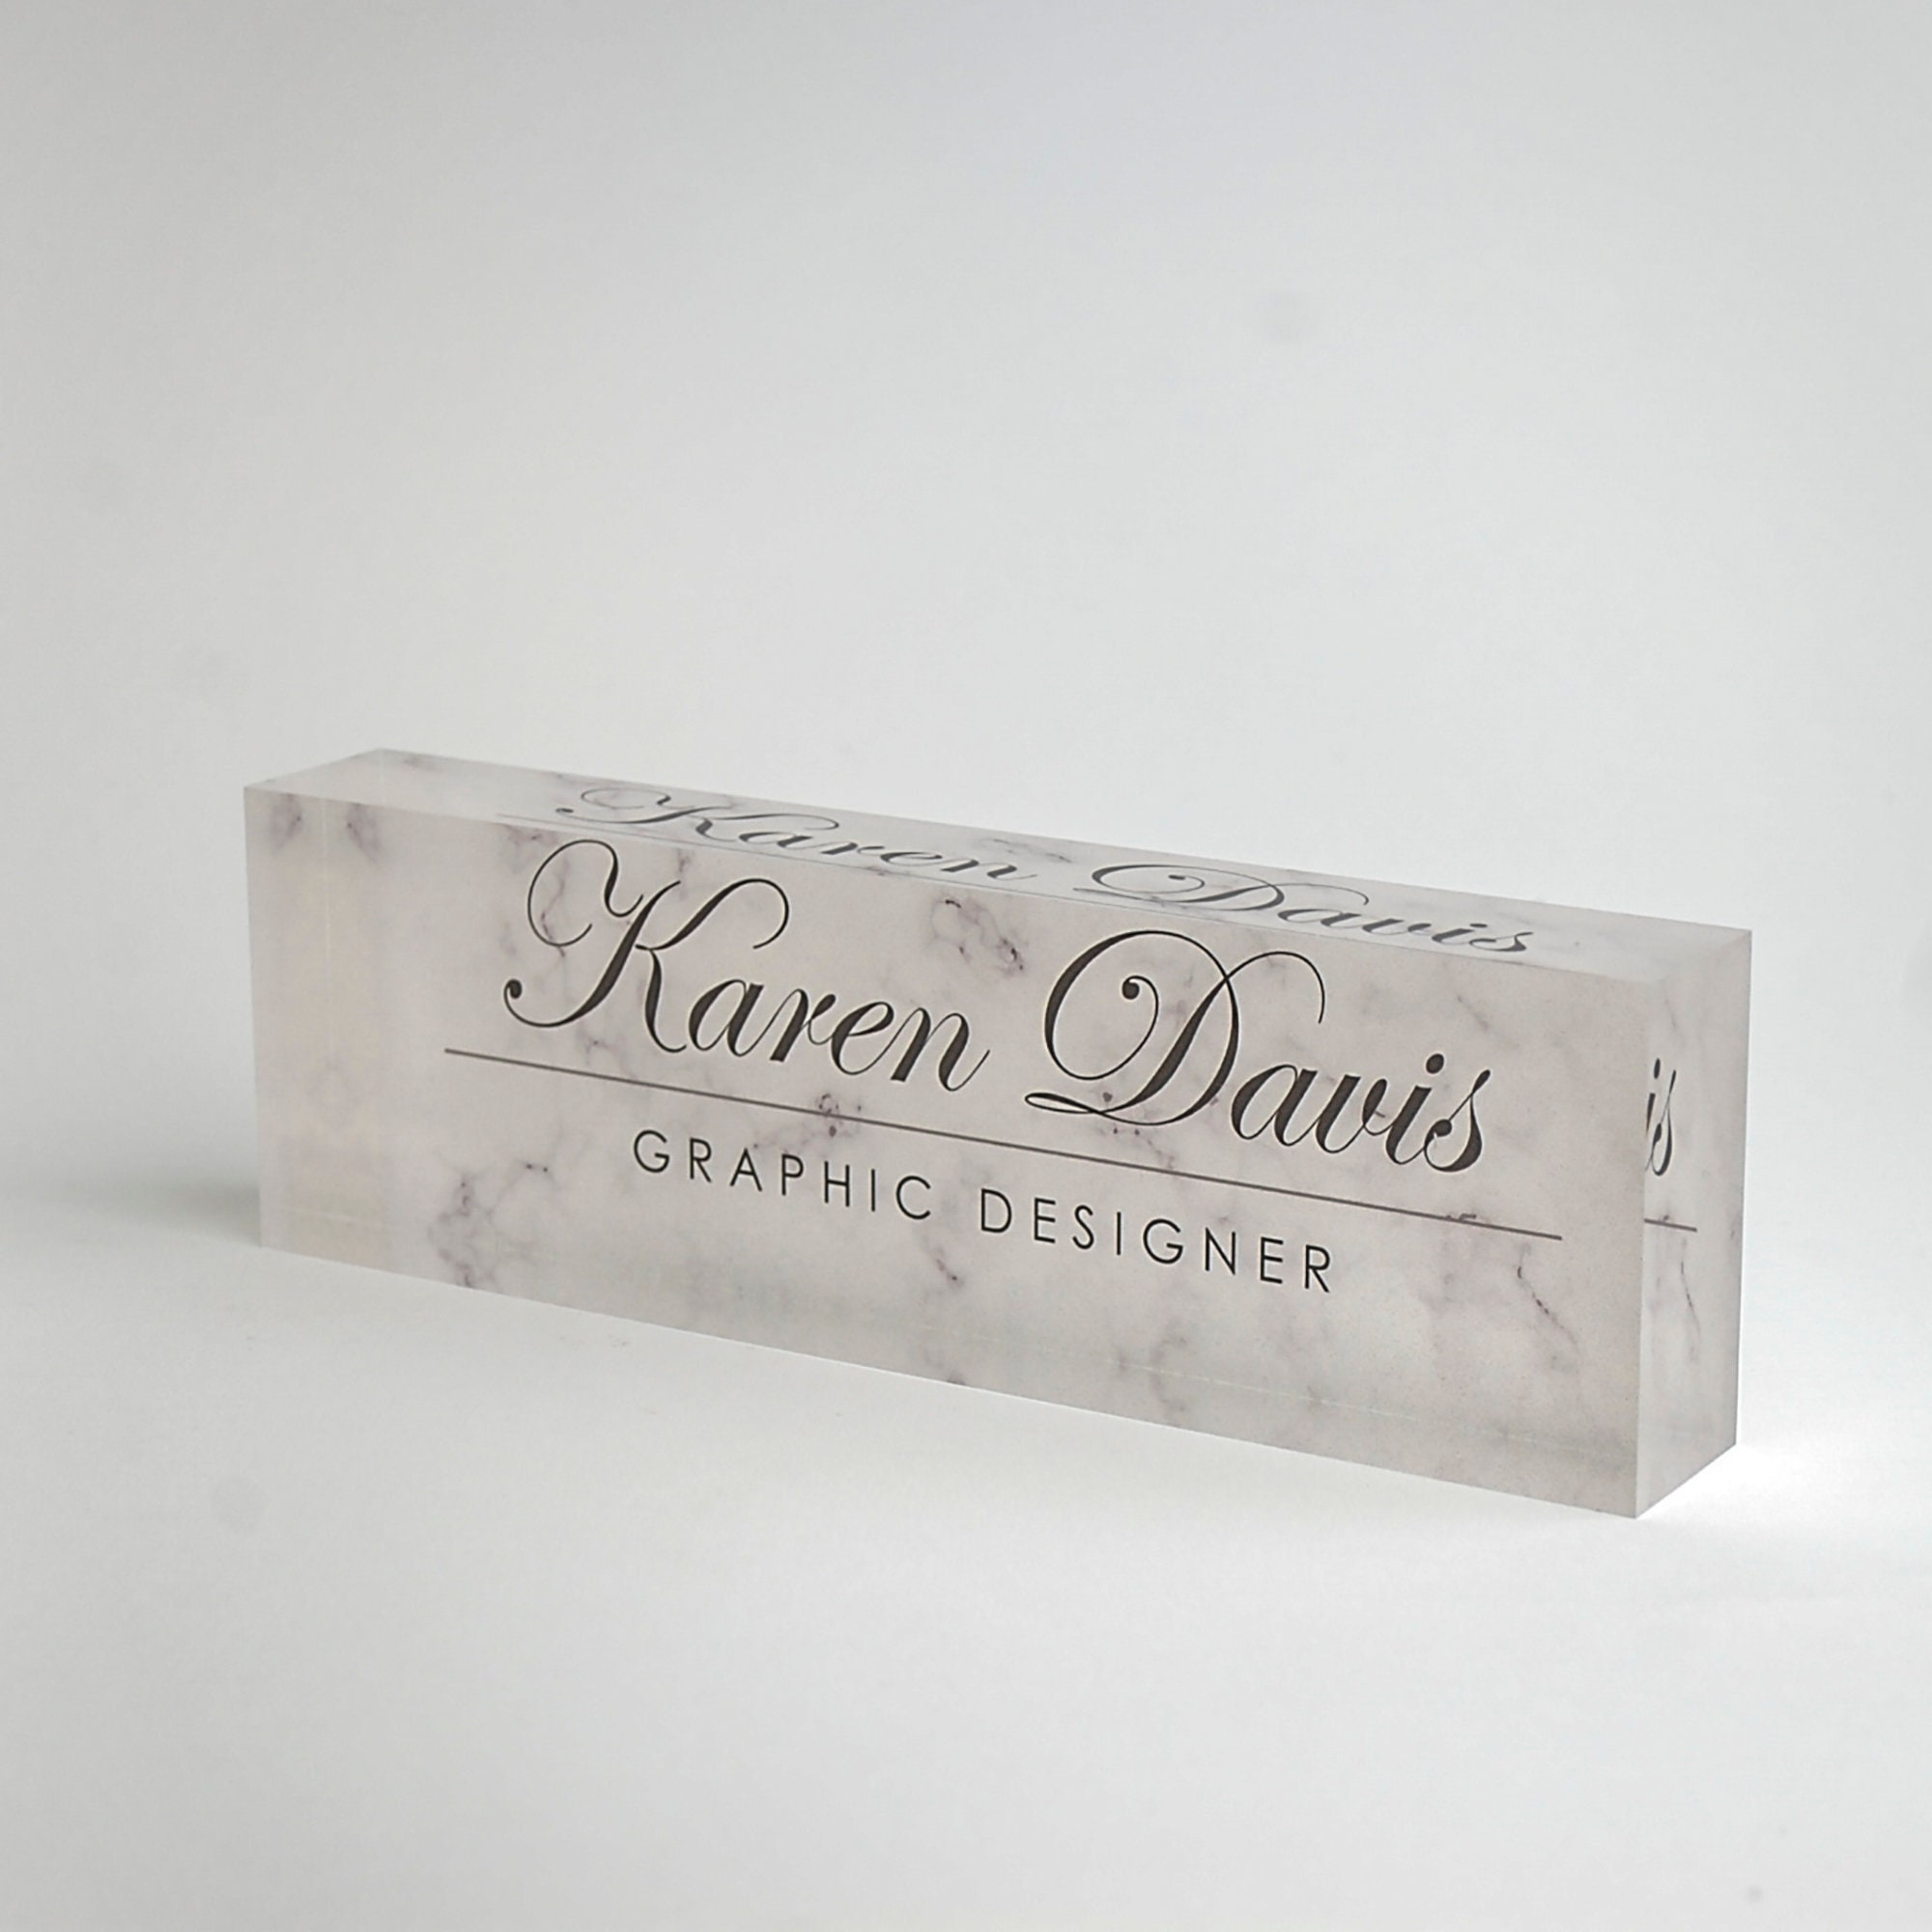 Personalized Desk Name Plate Custom Name On White Marble